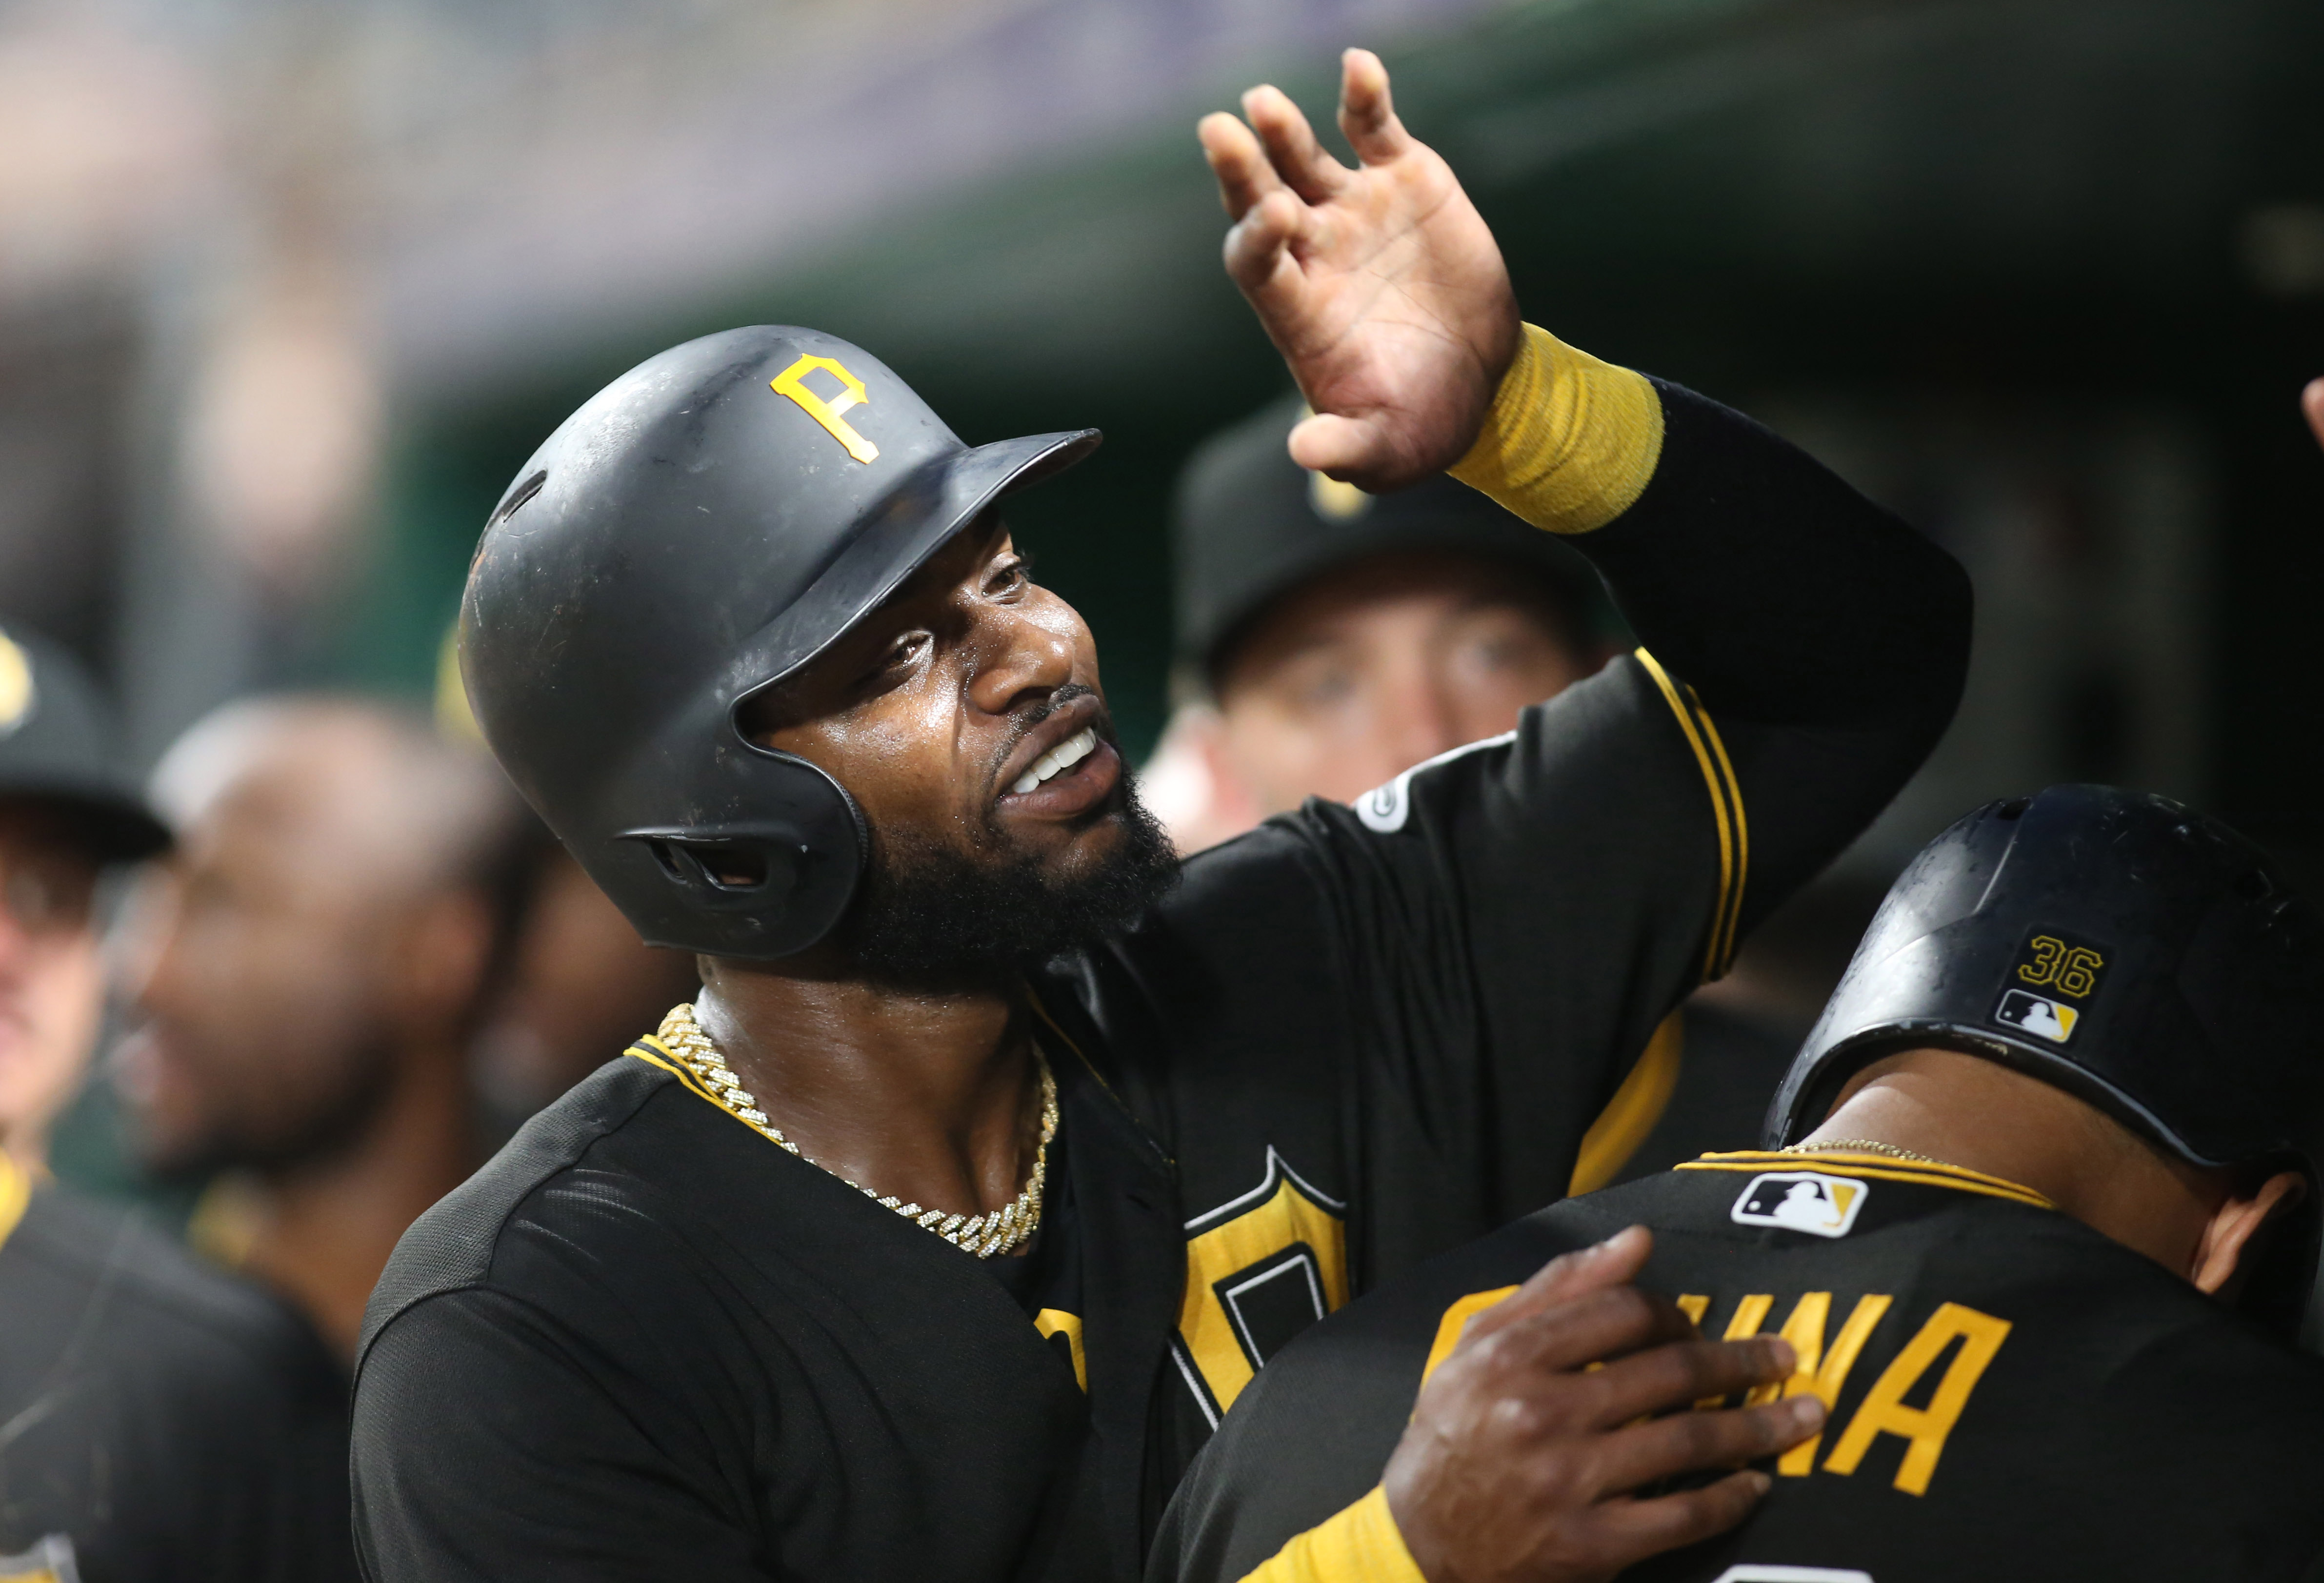 Polanco's season is a resounding success for Pirates development